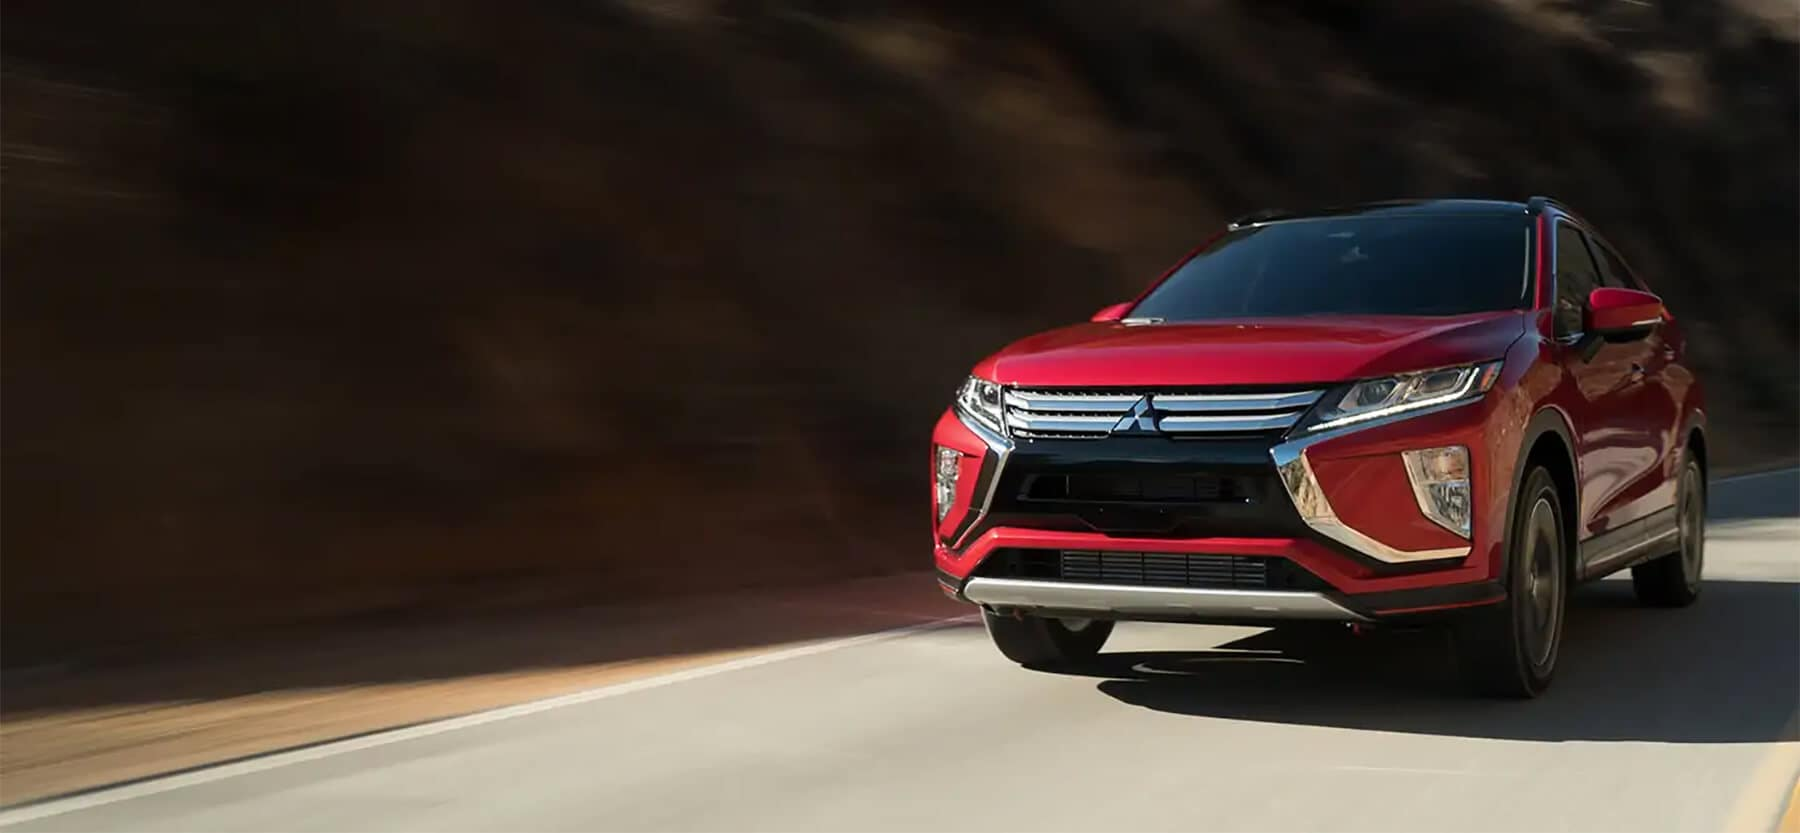 2020 Mitsubishi Eclipse Cross Slider